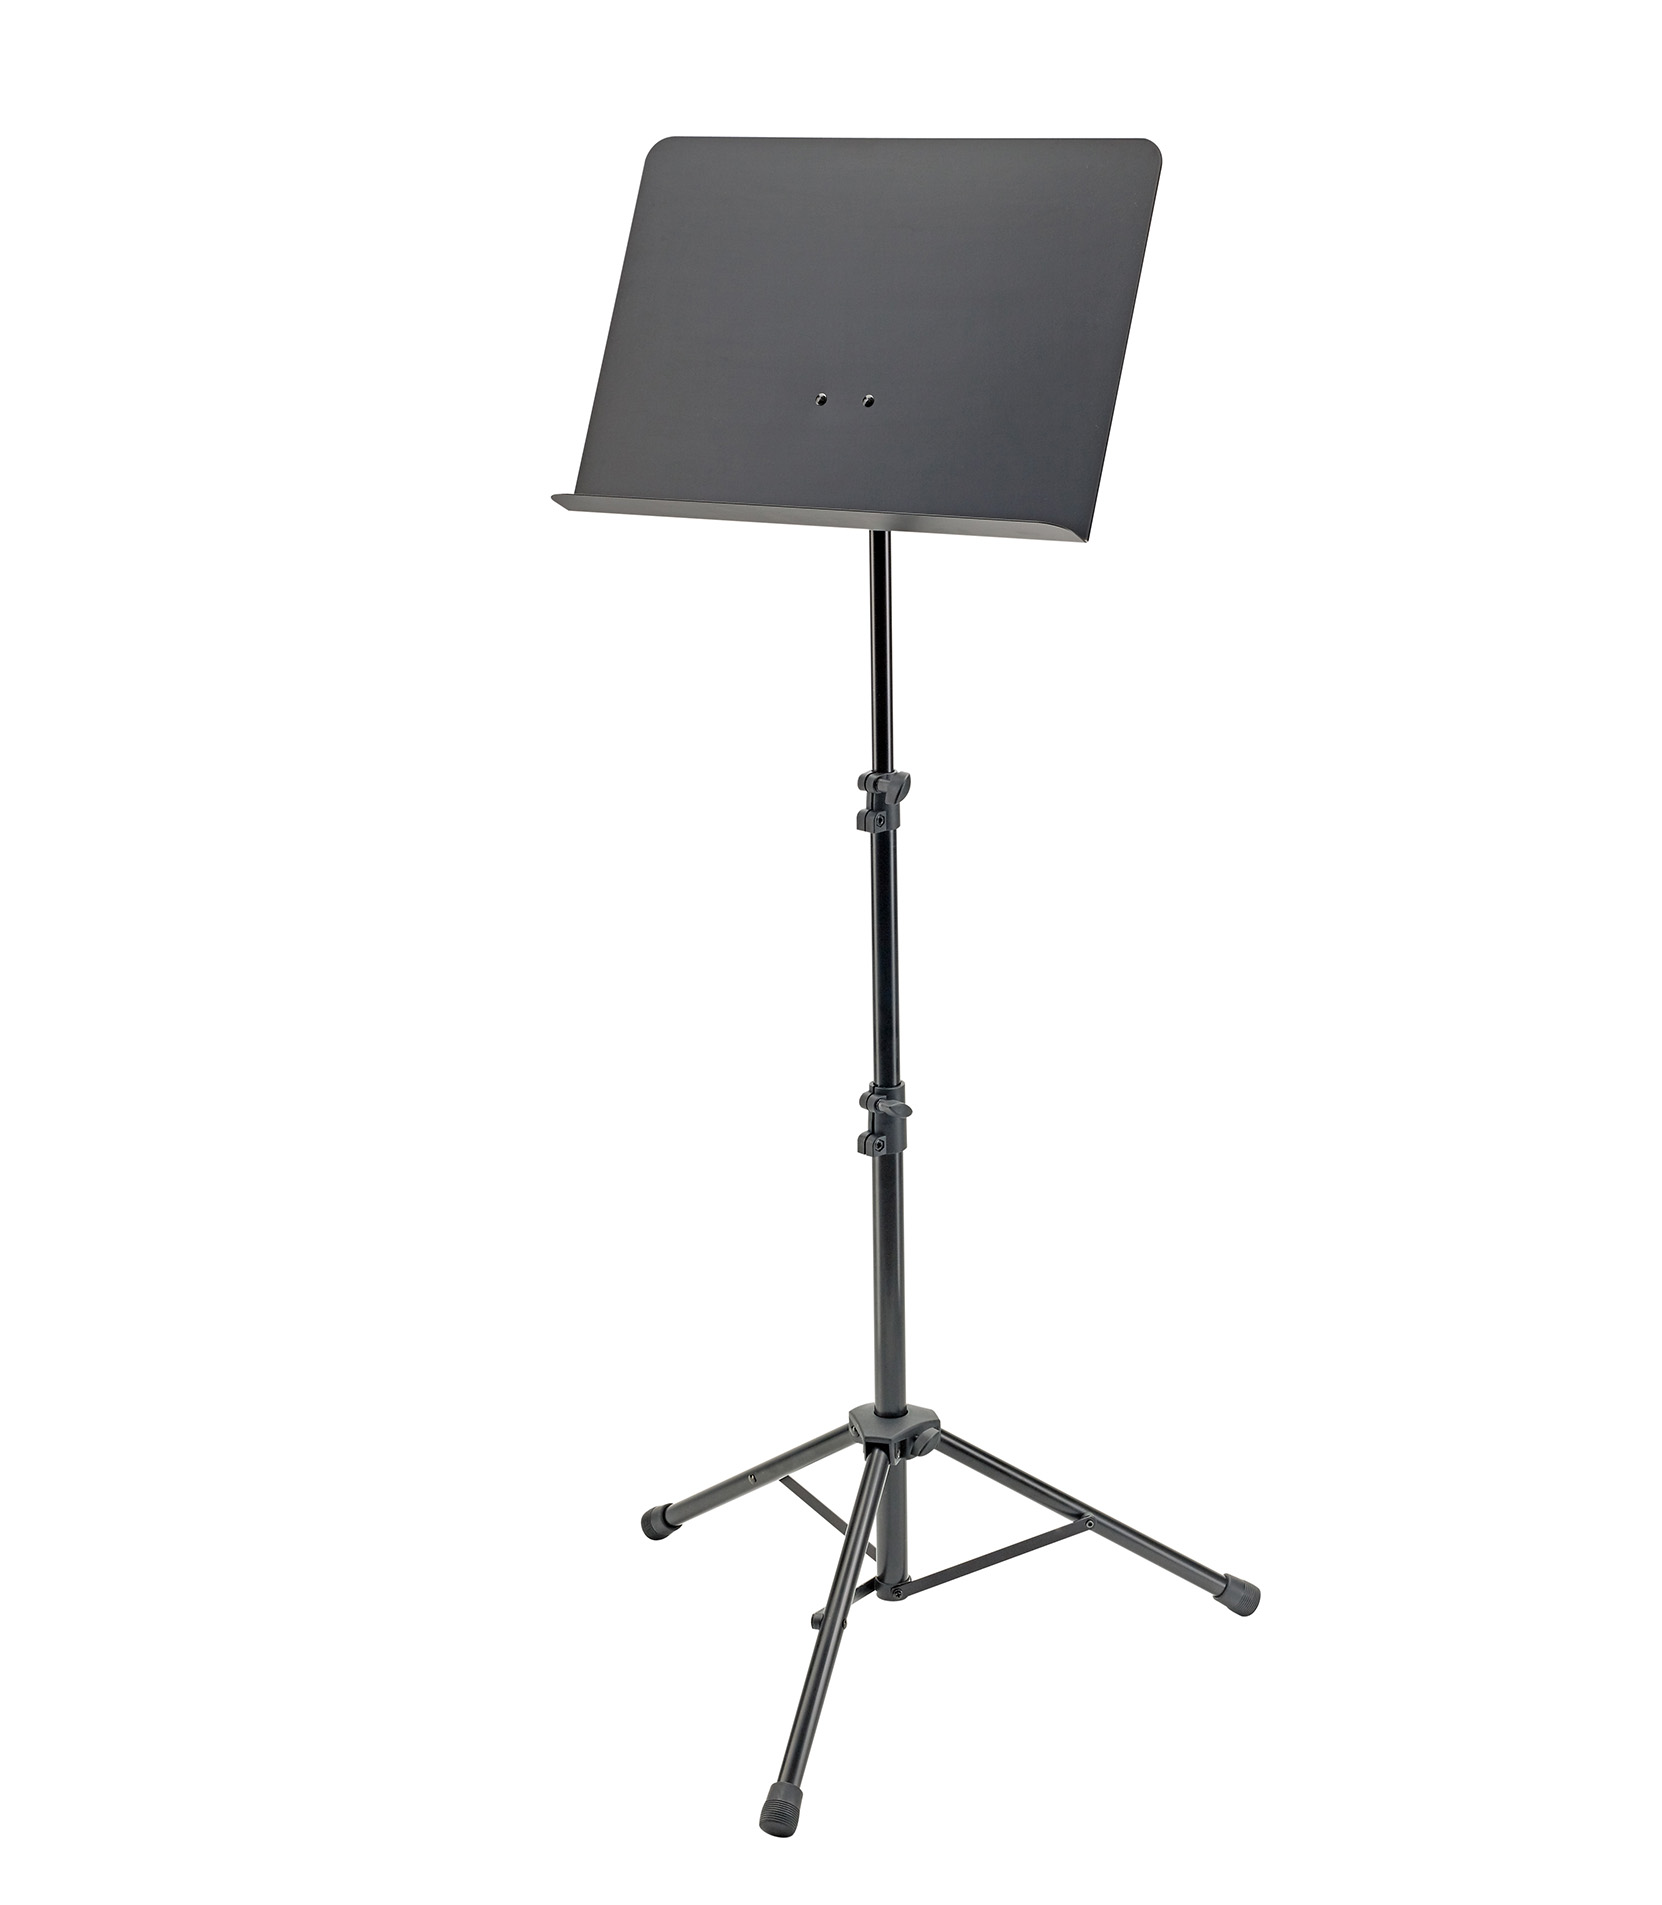 K&M - 11870 015 55 Aluminum music stand - Melody House Musical Instruments